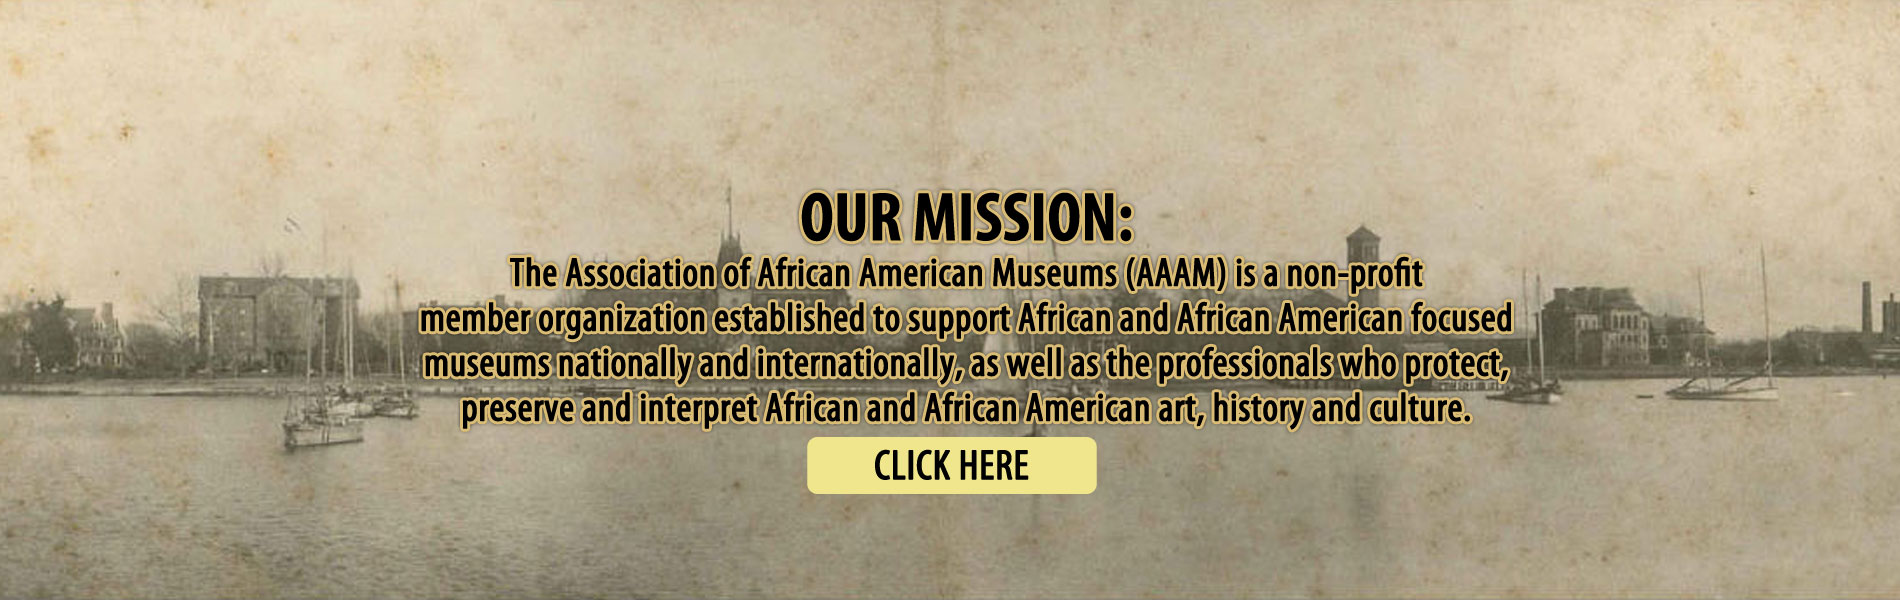 Association of African American Museums